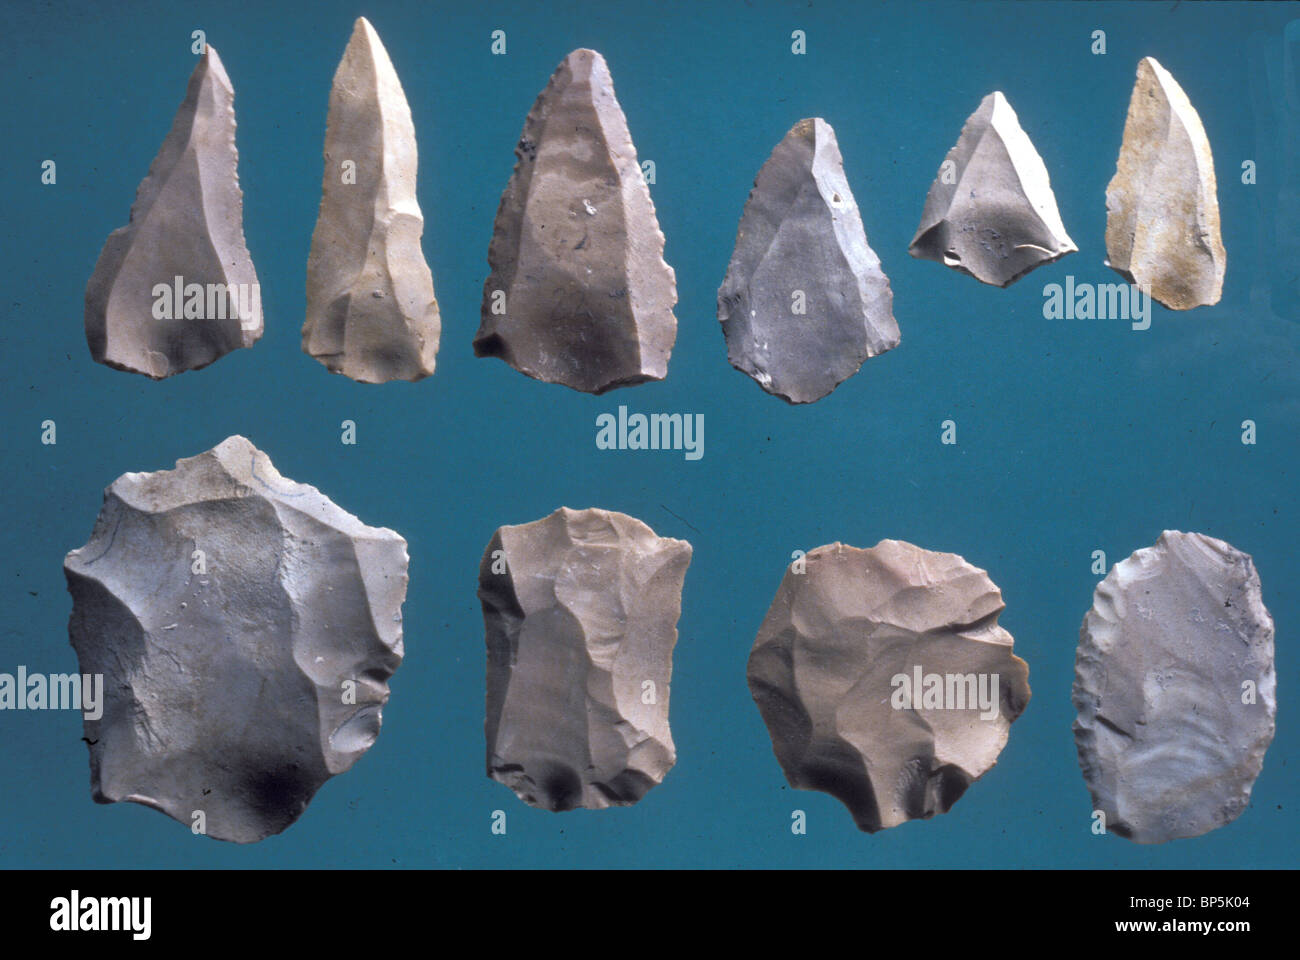 the paleolithic period is the period from